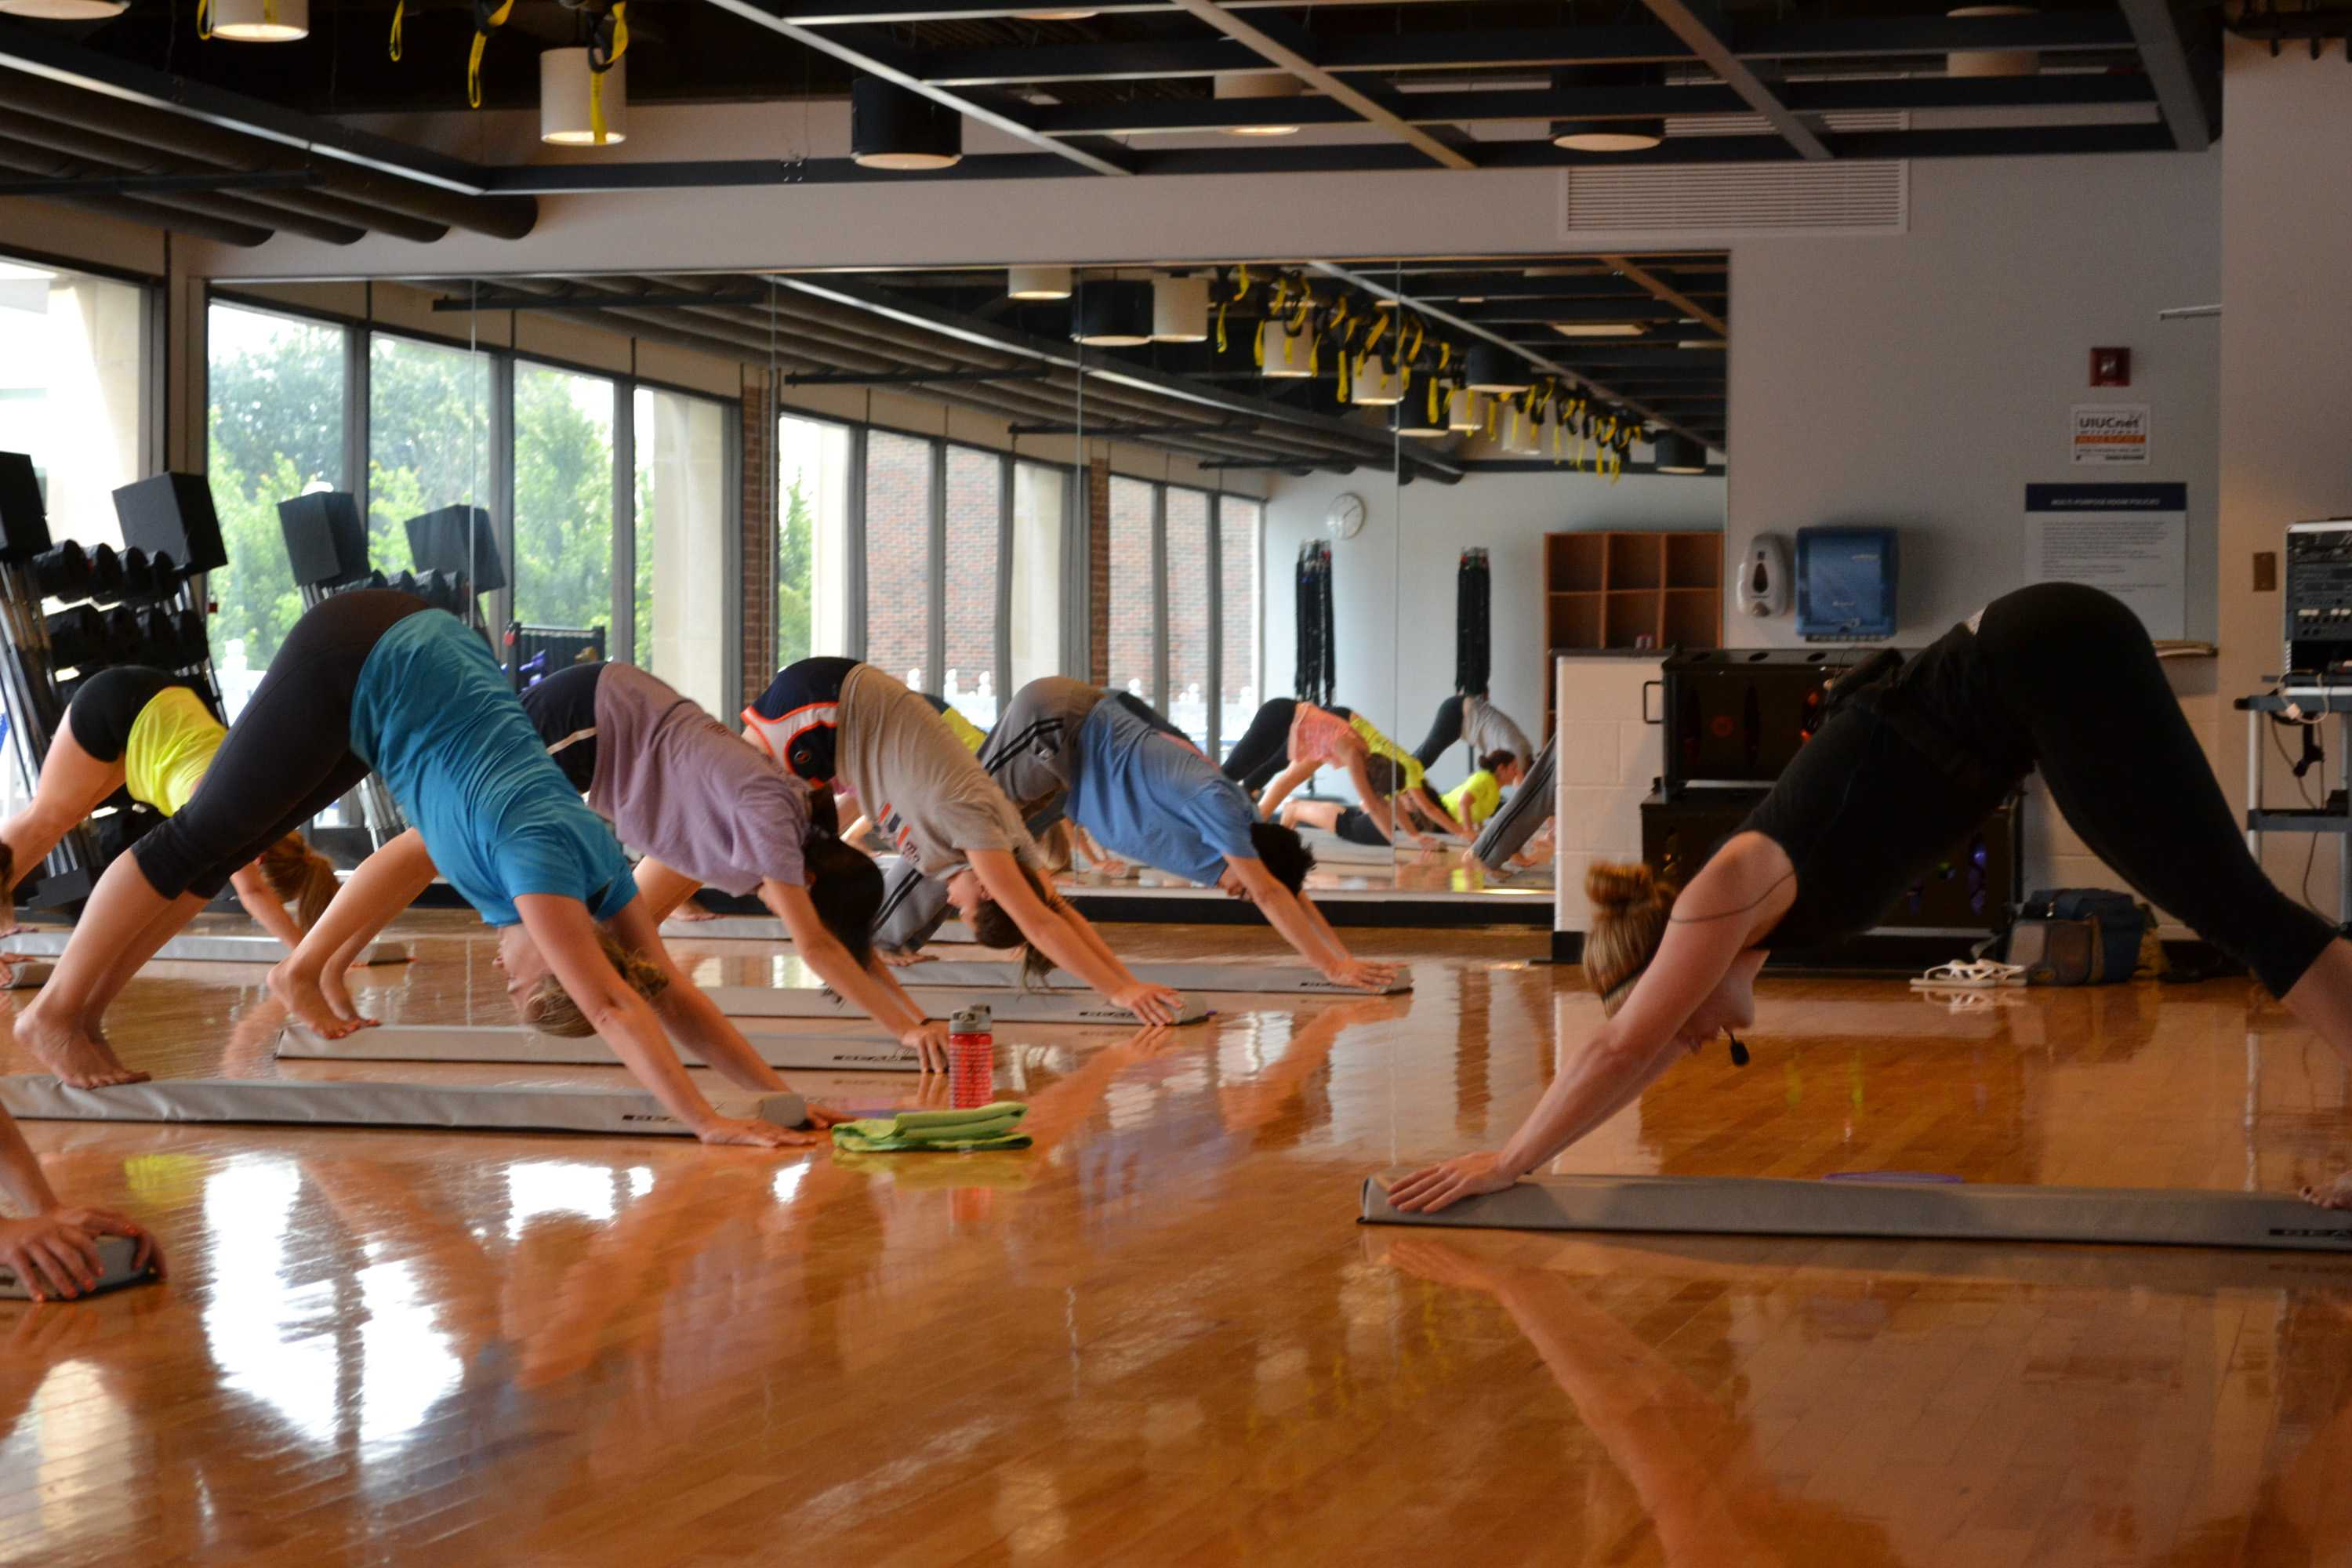 The BeamWork class, led by instructor Sara, works on strength of mind and body at the ARC.